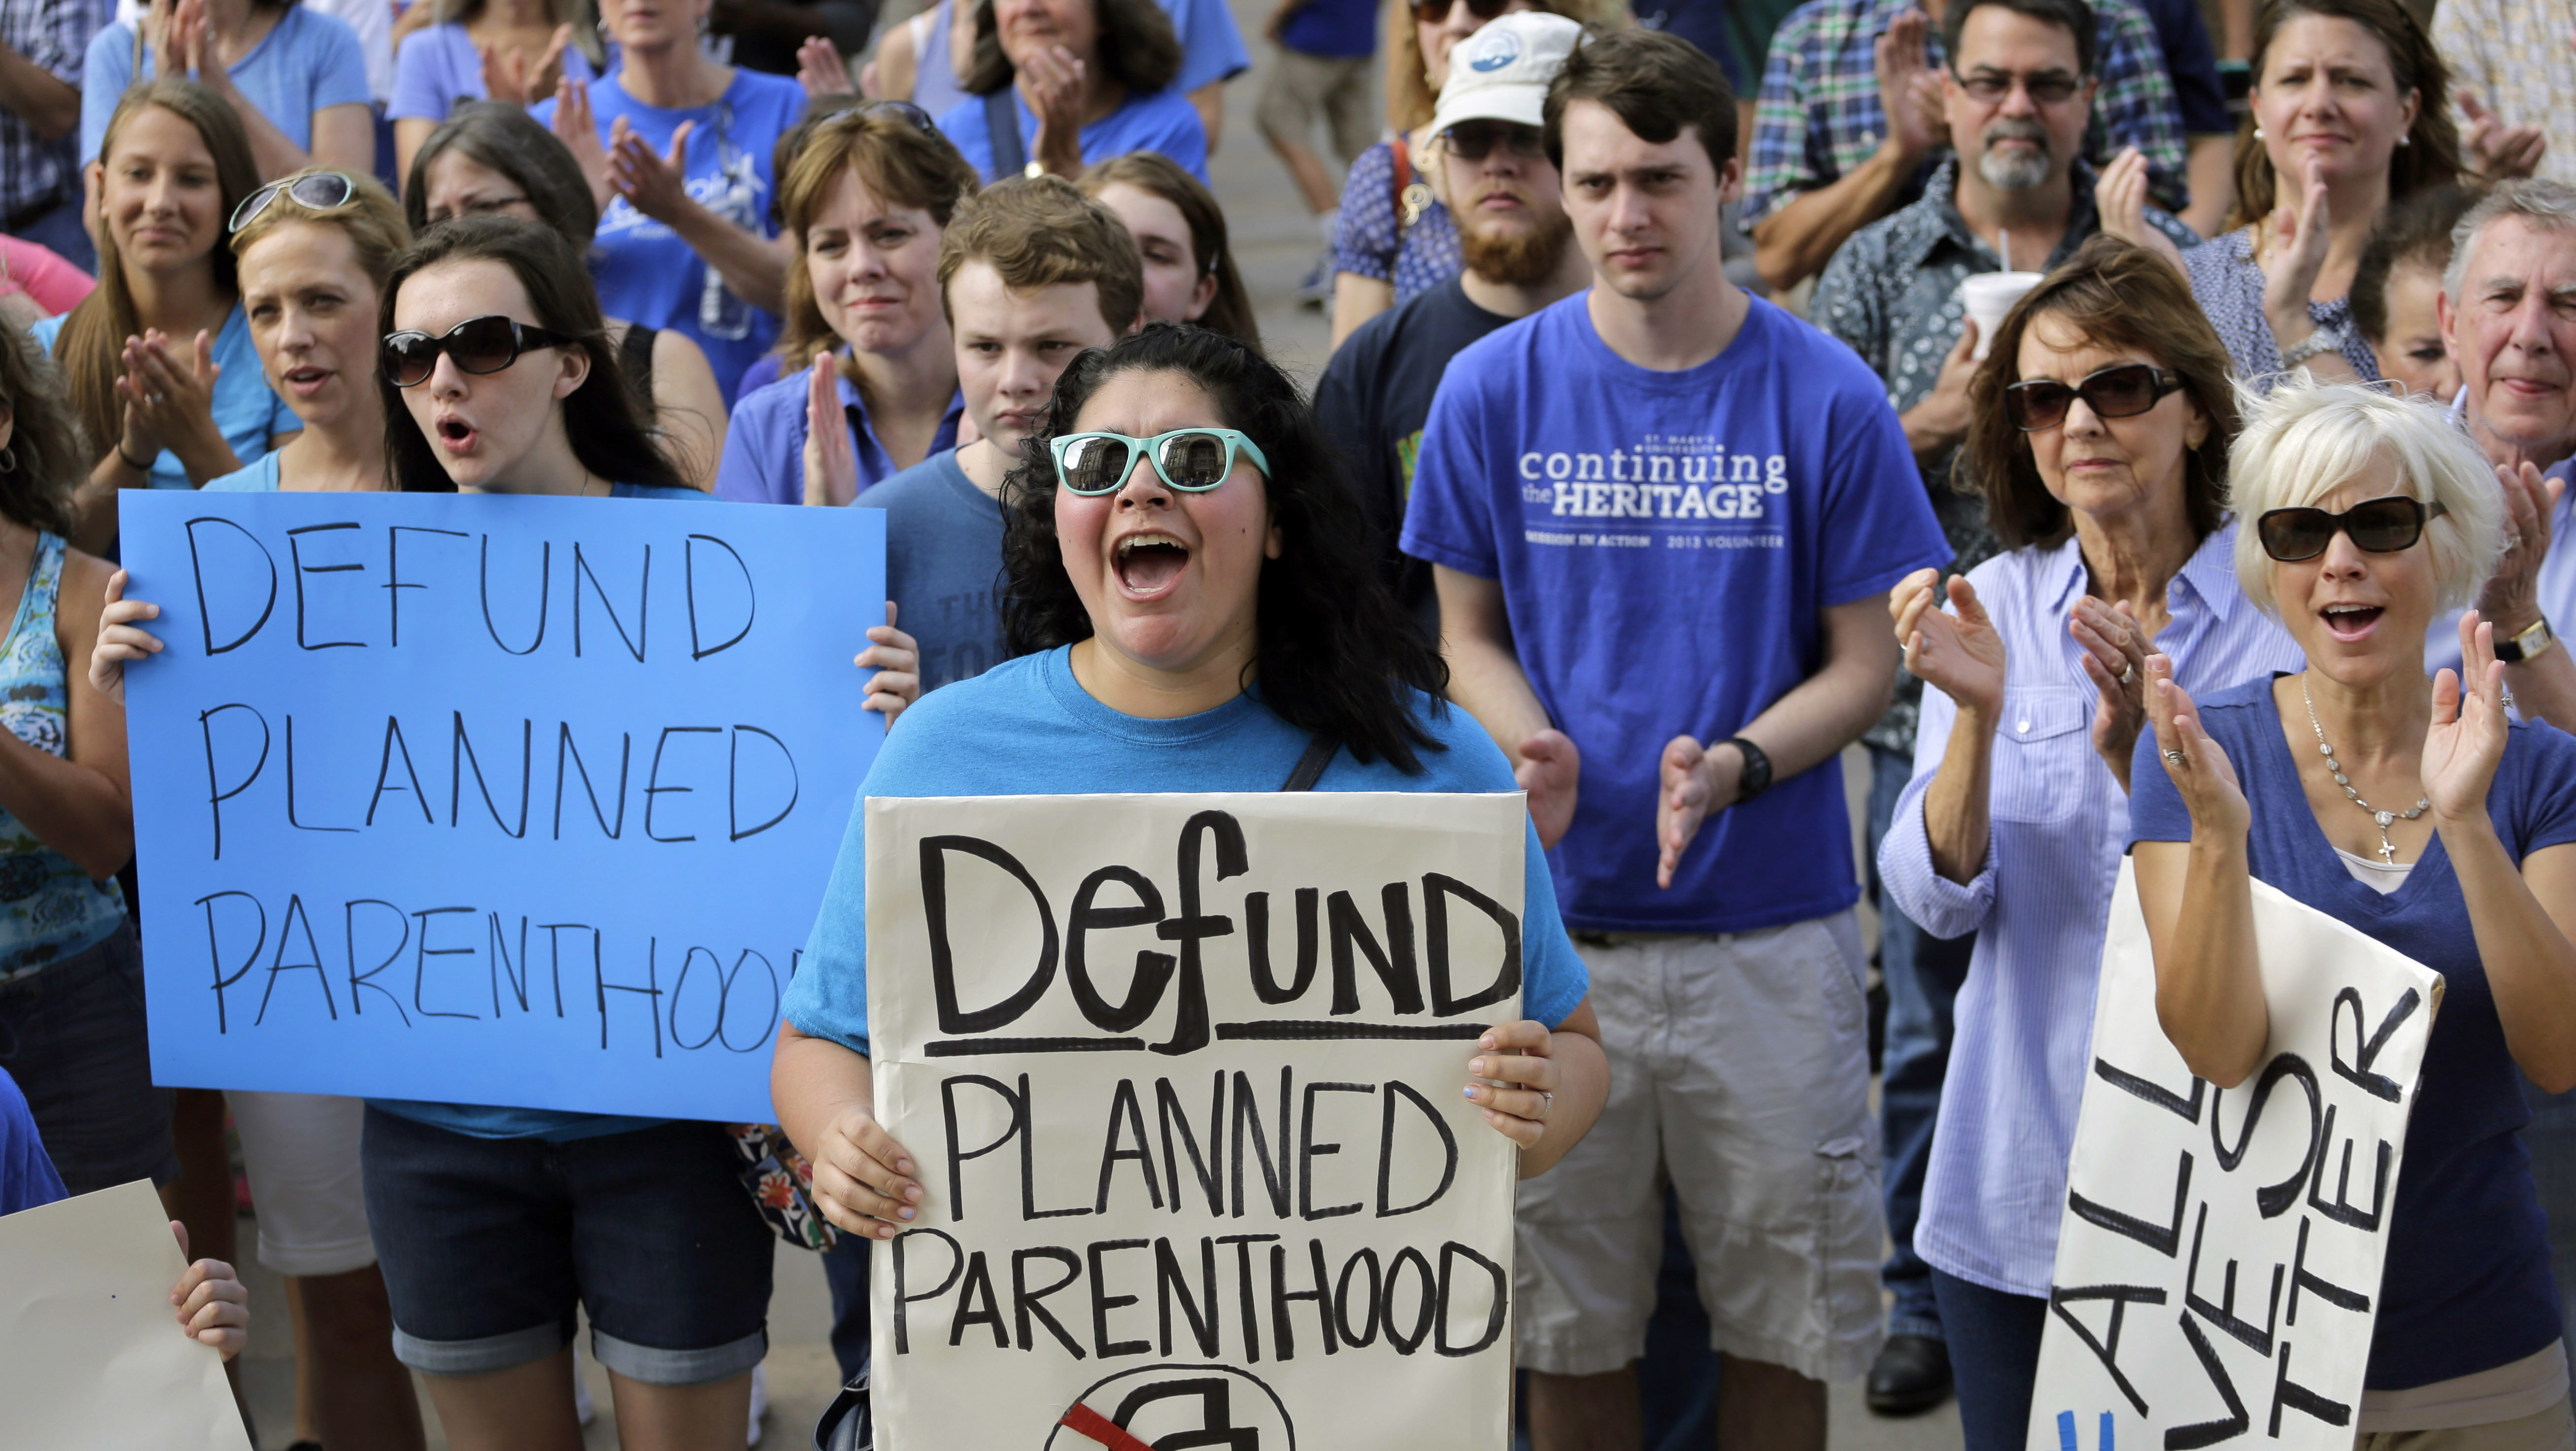 Texas Used Disputed Undercover Videos to Justify Defunding Planned Parenthood